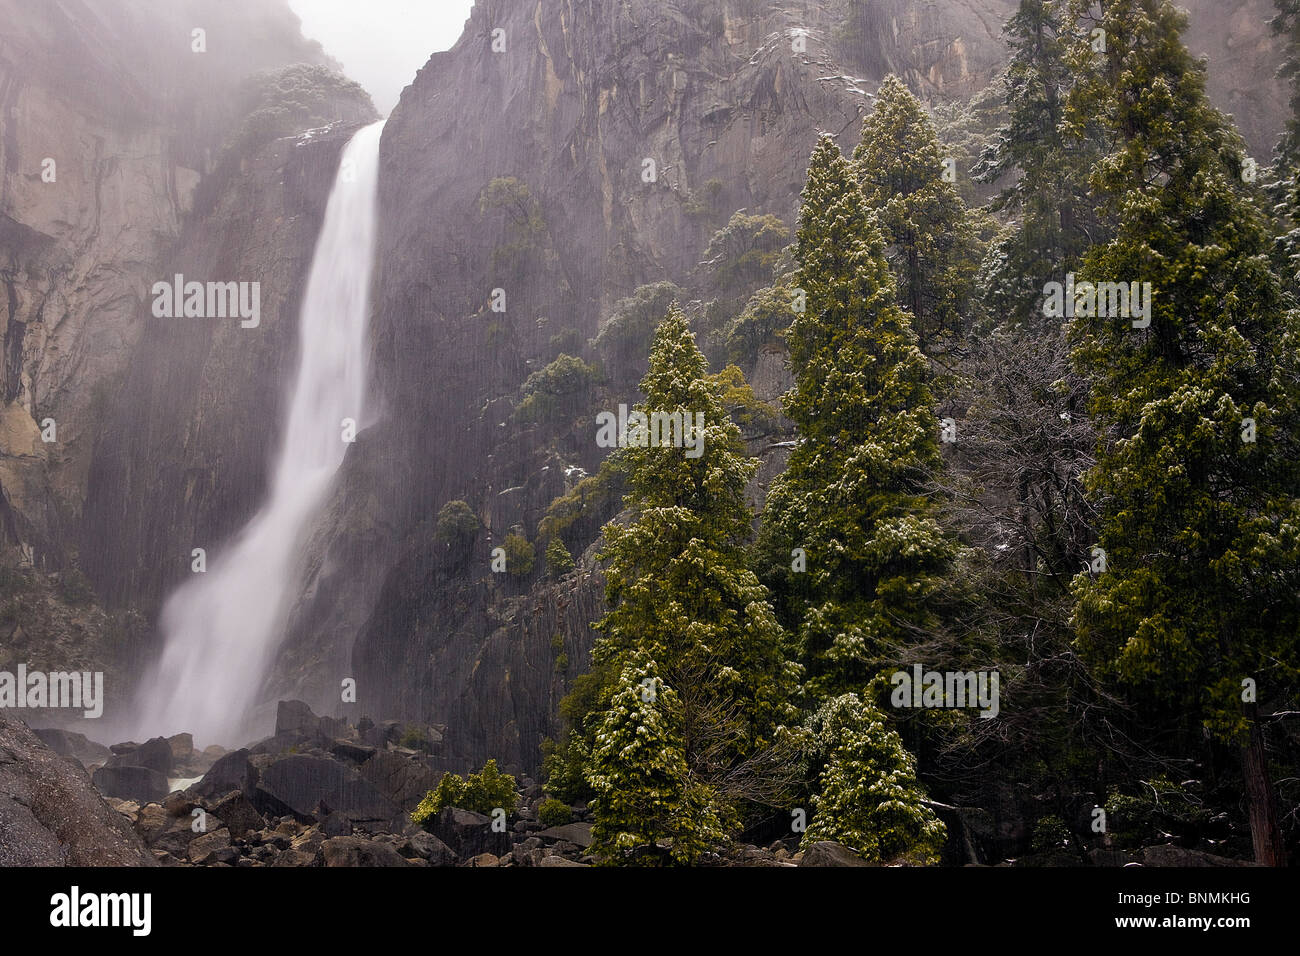 Yosemite National Park, California, USA - Stock Image